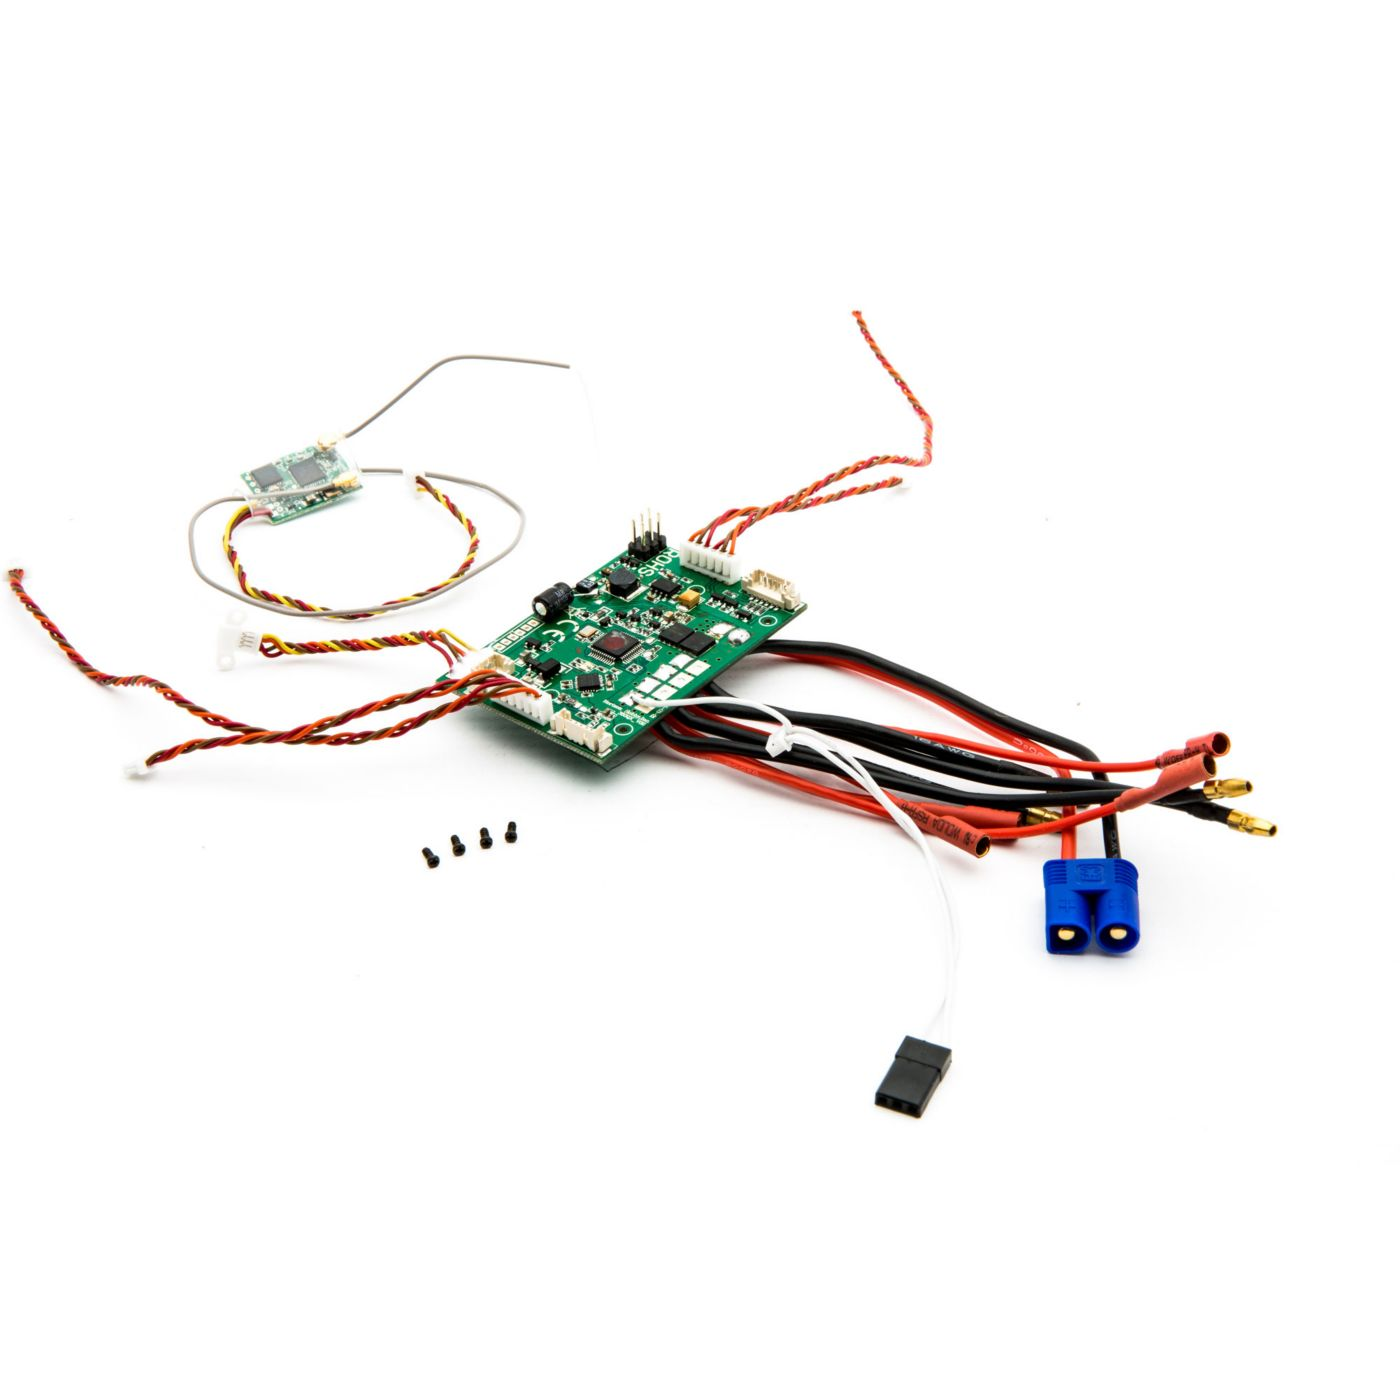 Horizonhobby Products 350 Qx Battery Wiring Diagram Main Control Board With Rx 2 3 Blh8101